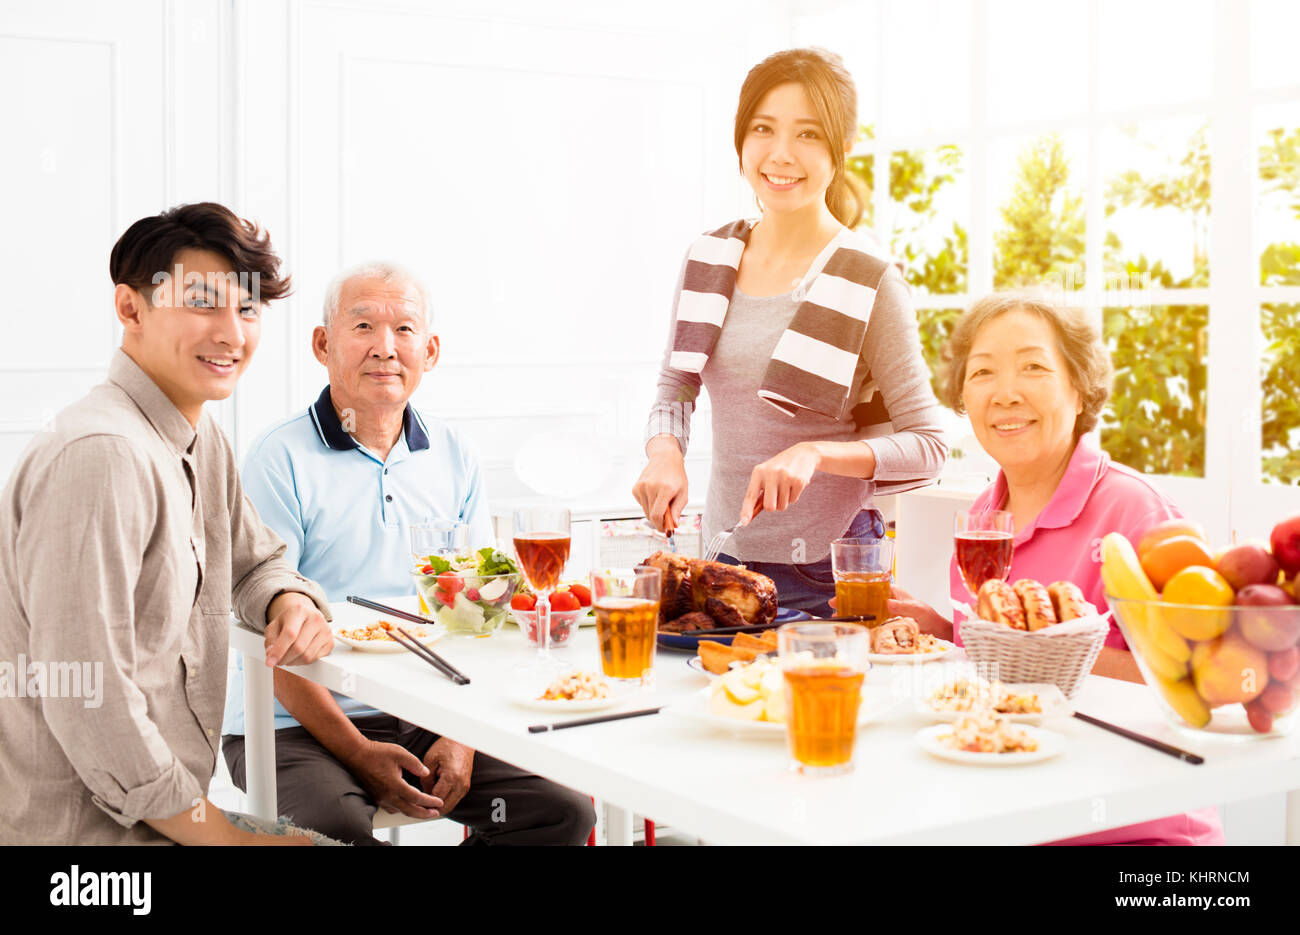 Family Eating Christmas Dinner Stock Photos & Family ...